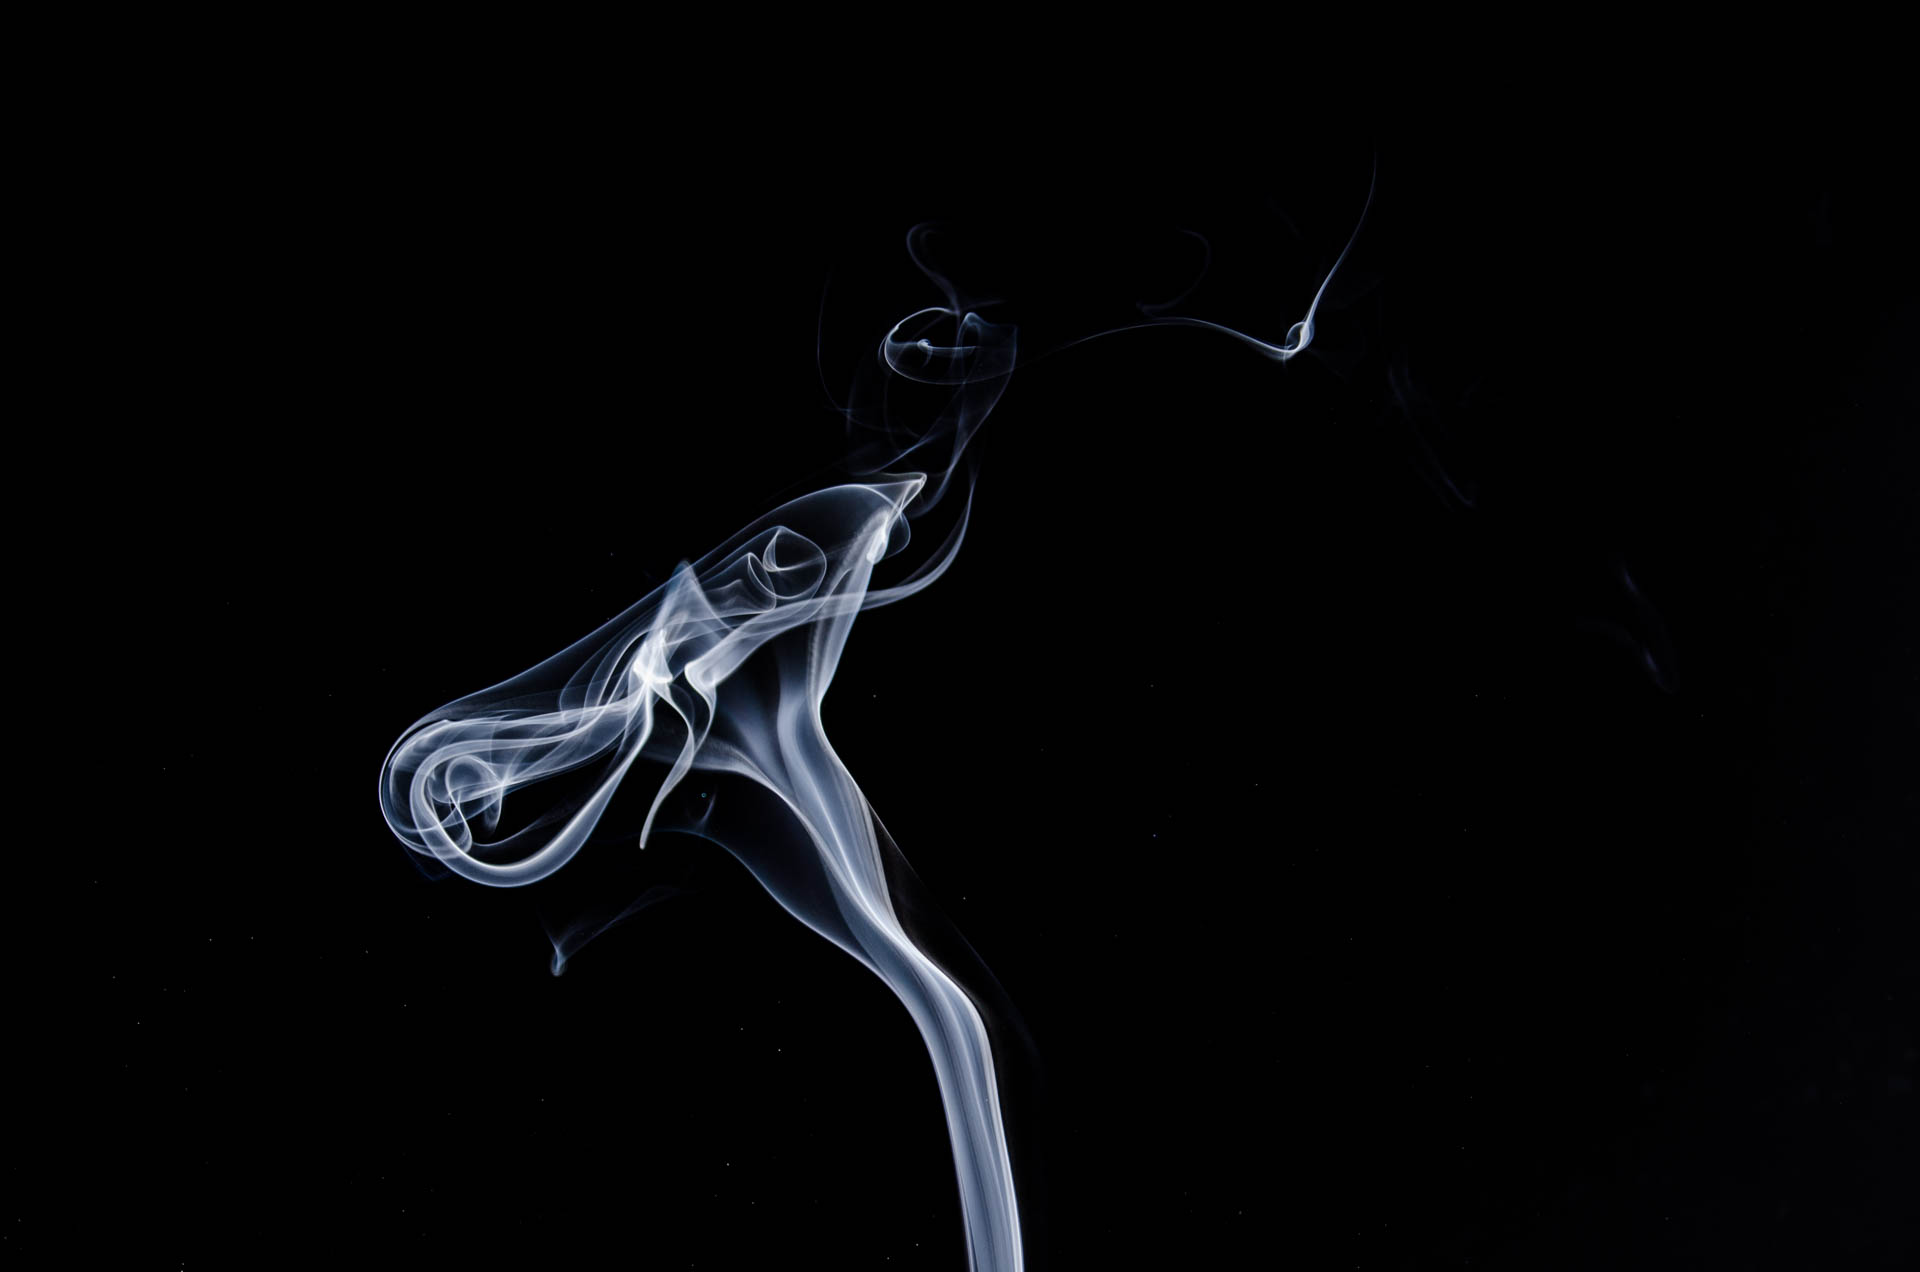 White smoke photo